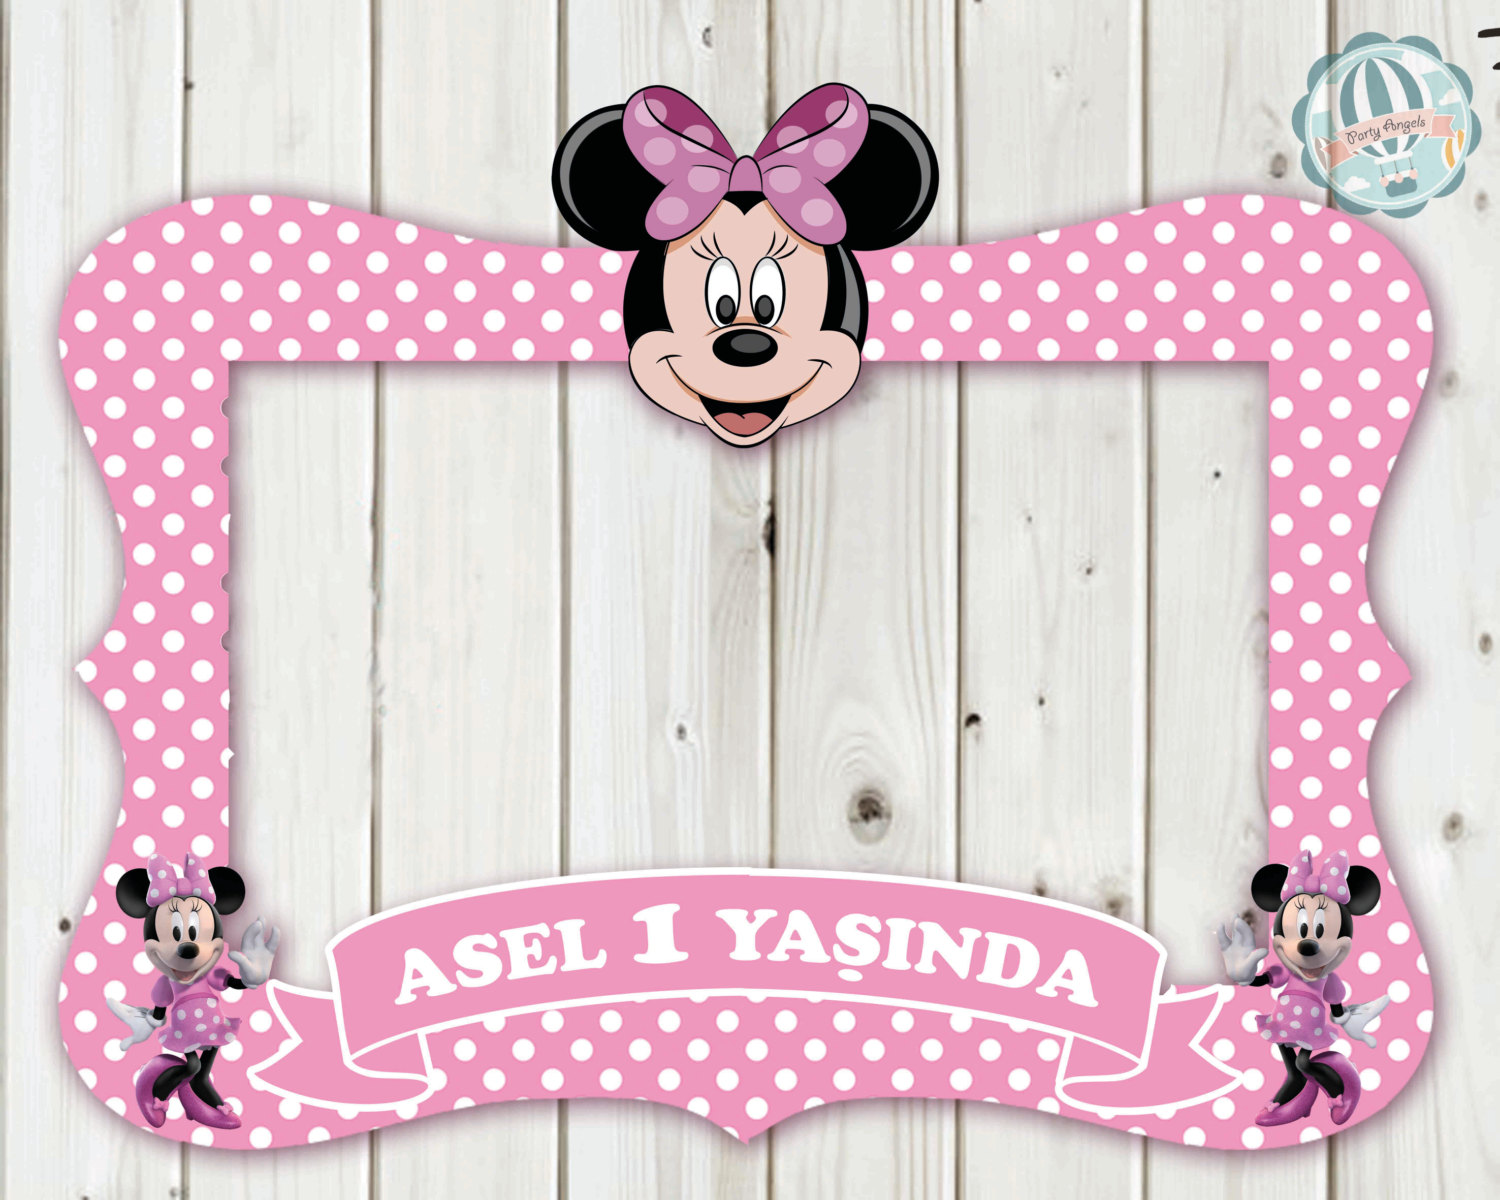 minnie mouse mickey mouse daisy duck frame photo booth. Black Bedroom Furniture Sets. Home Design Ideas